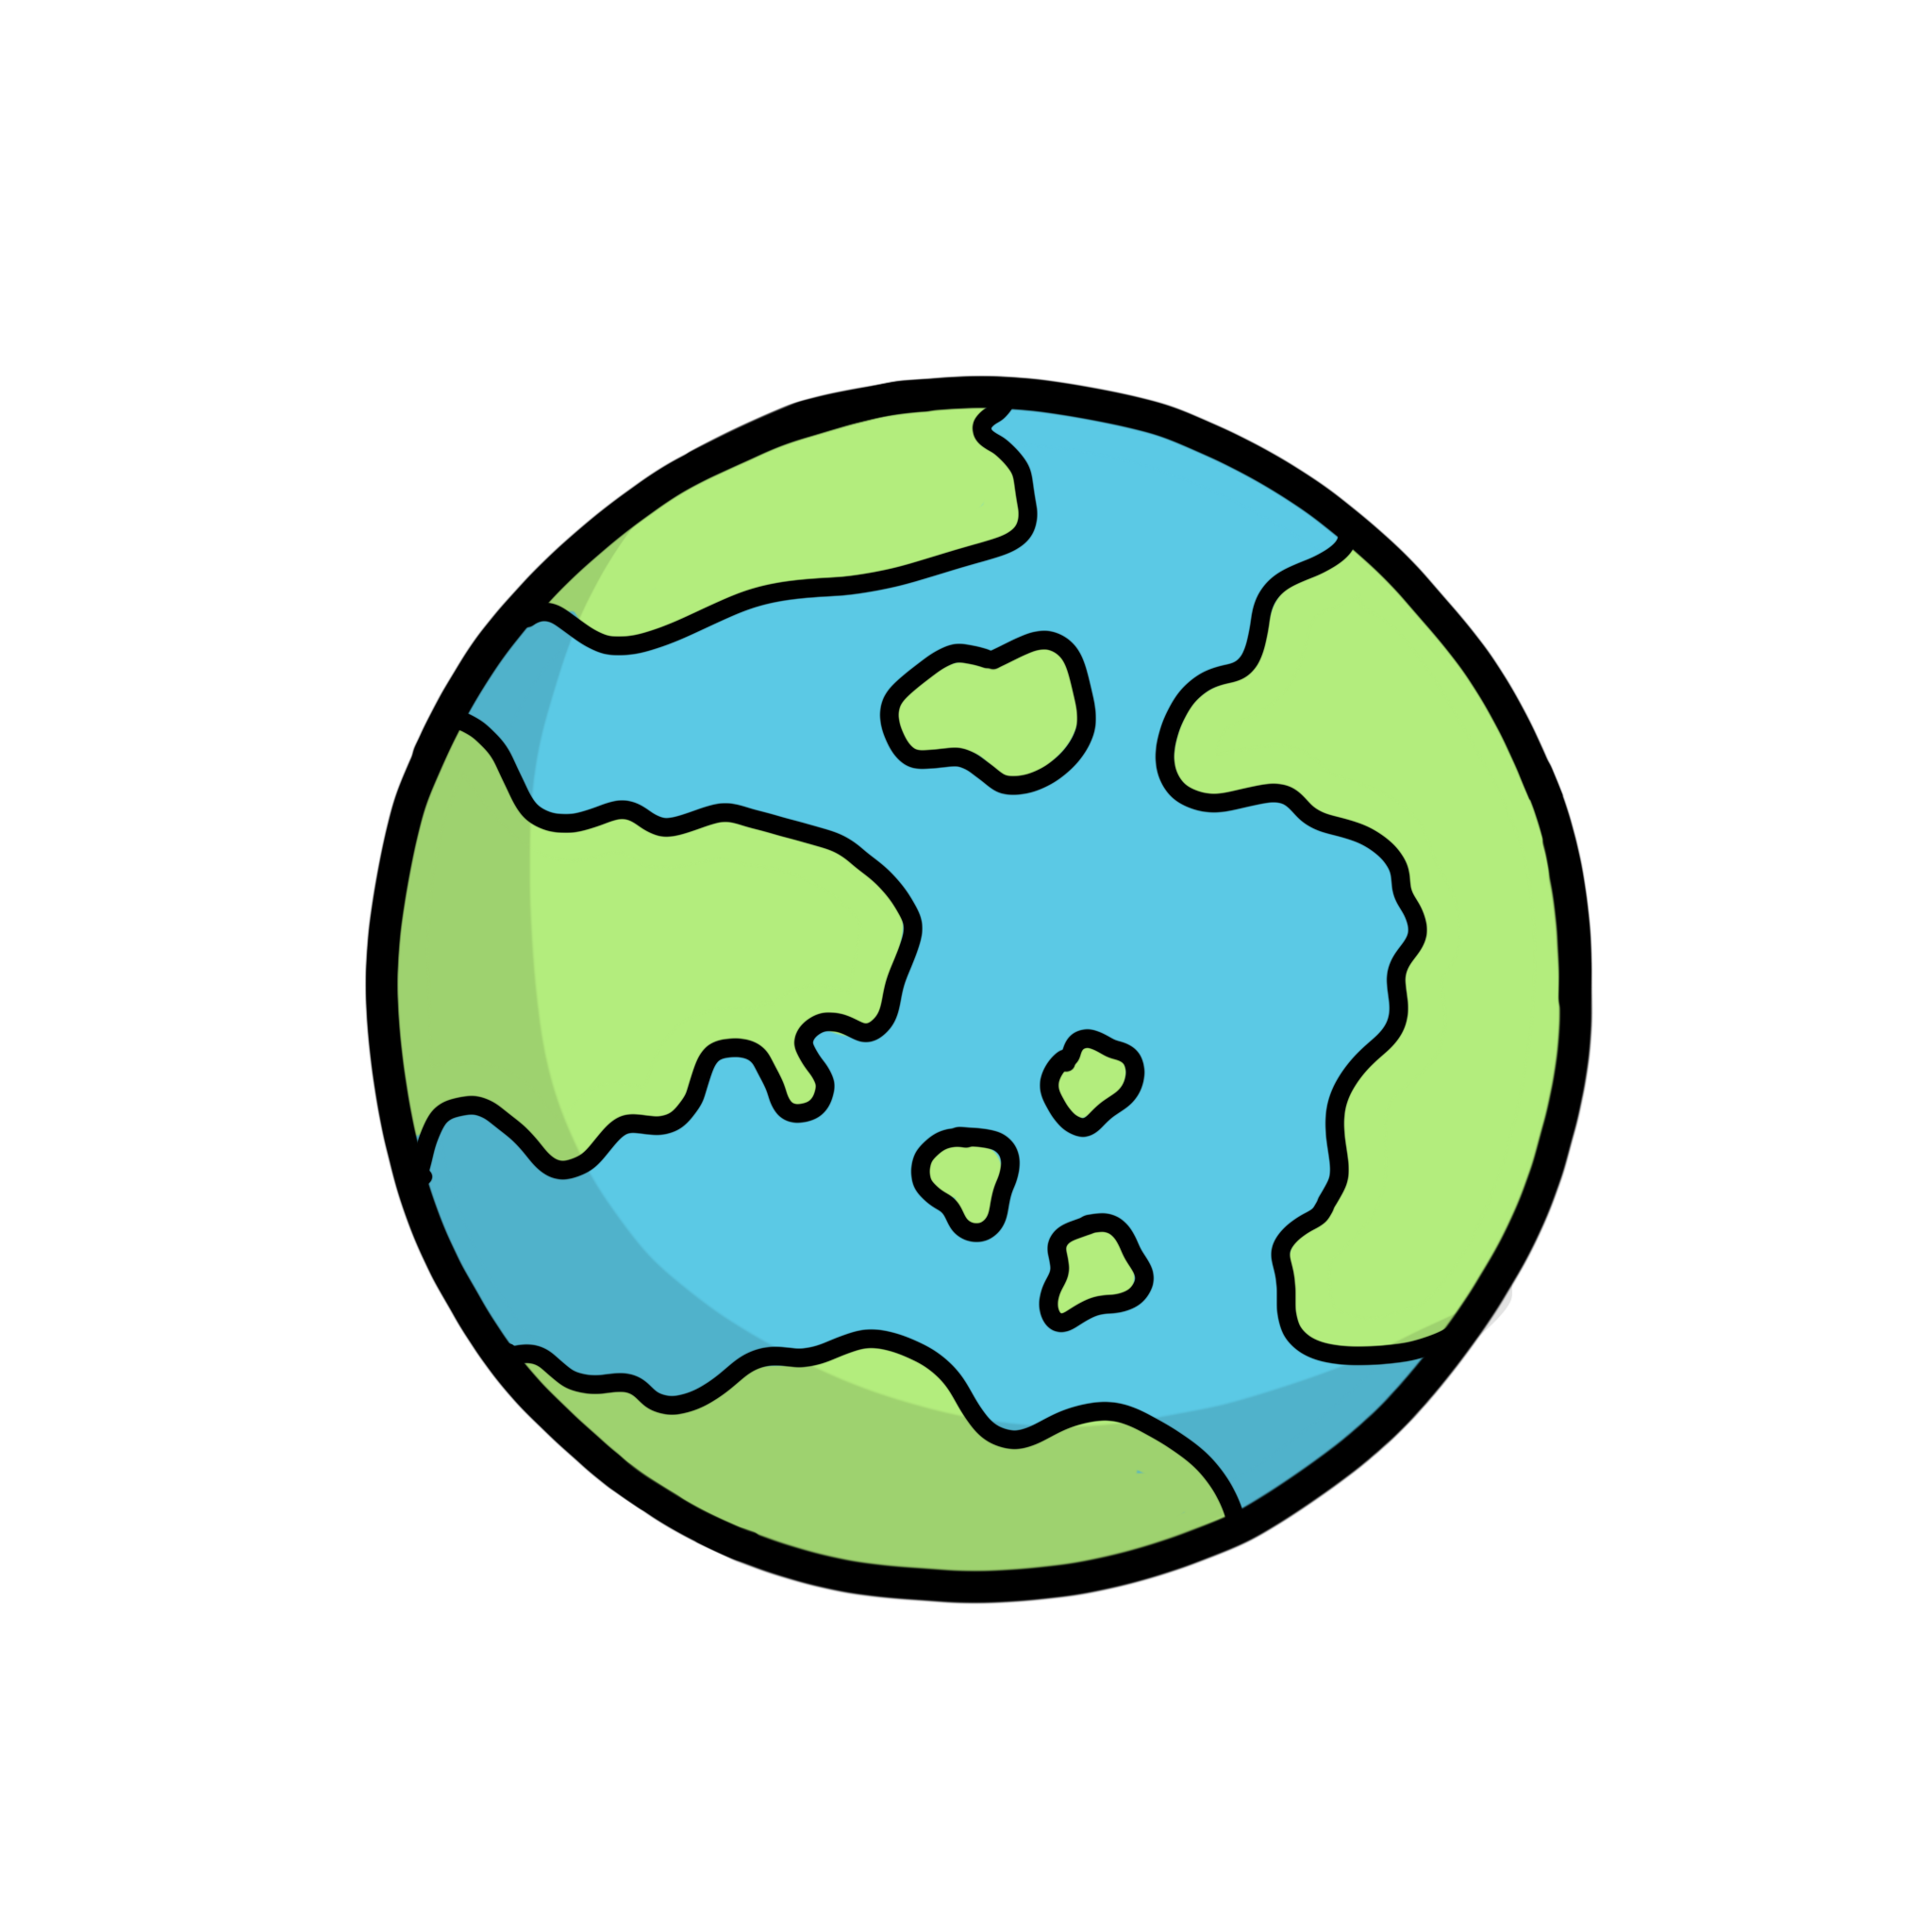 Illustration of the globe of the world